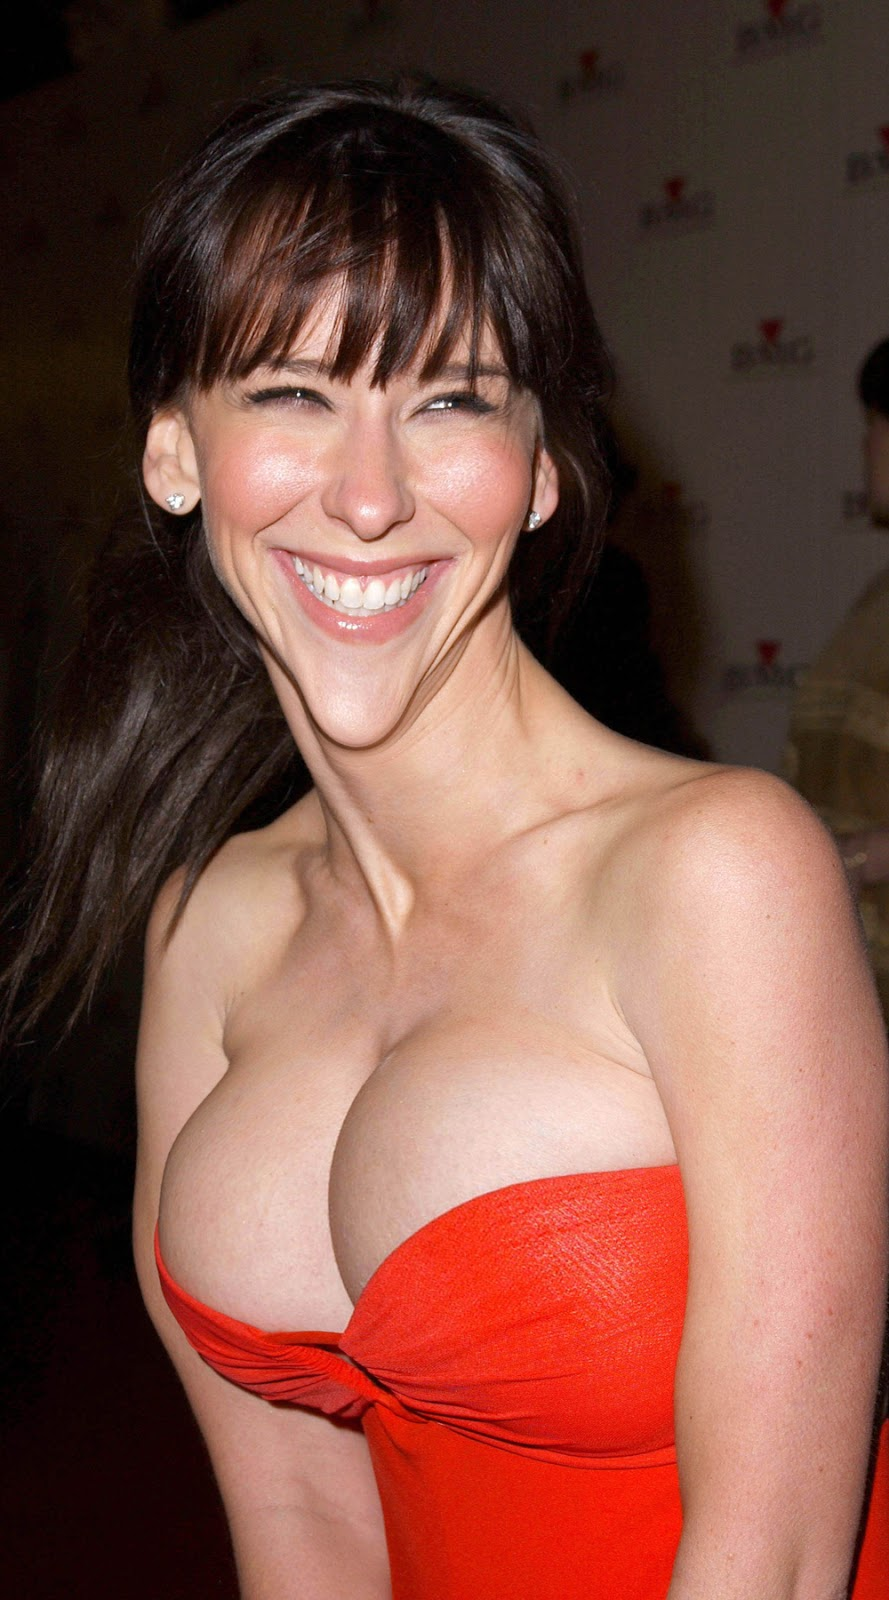 dildo-jennifer-love-hewitt-boob-size-making